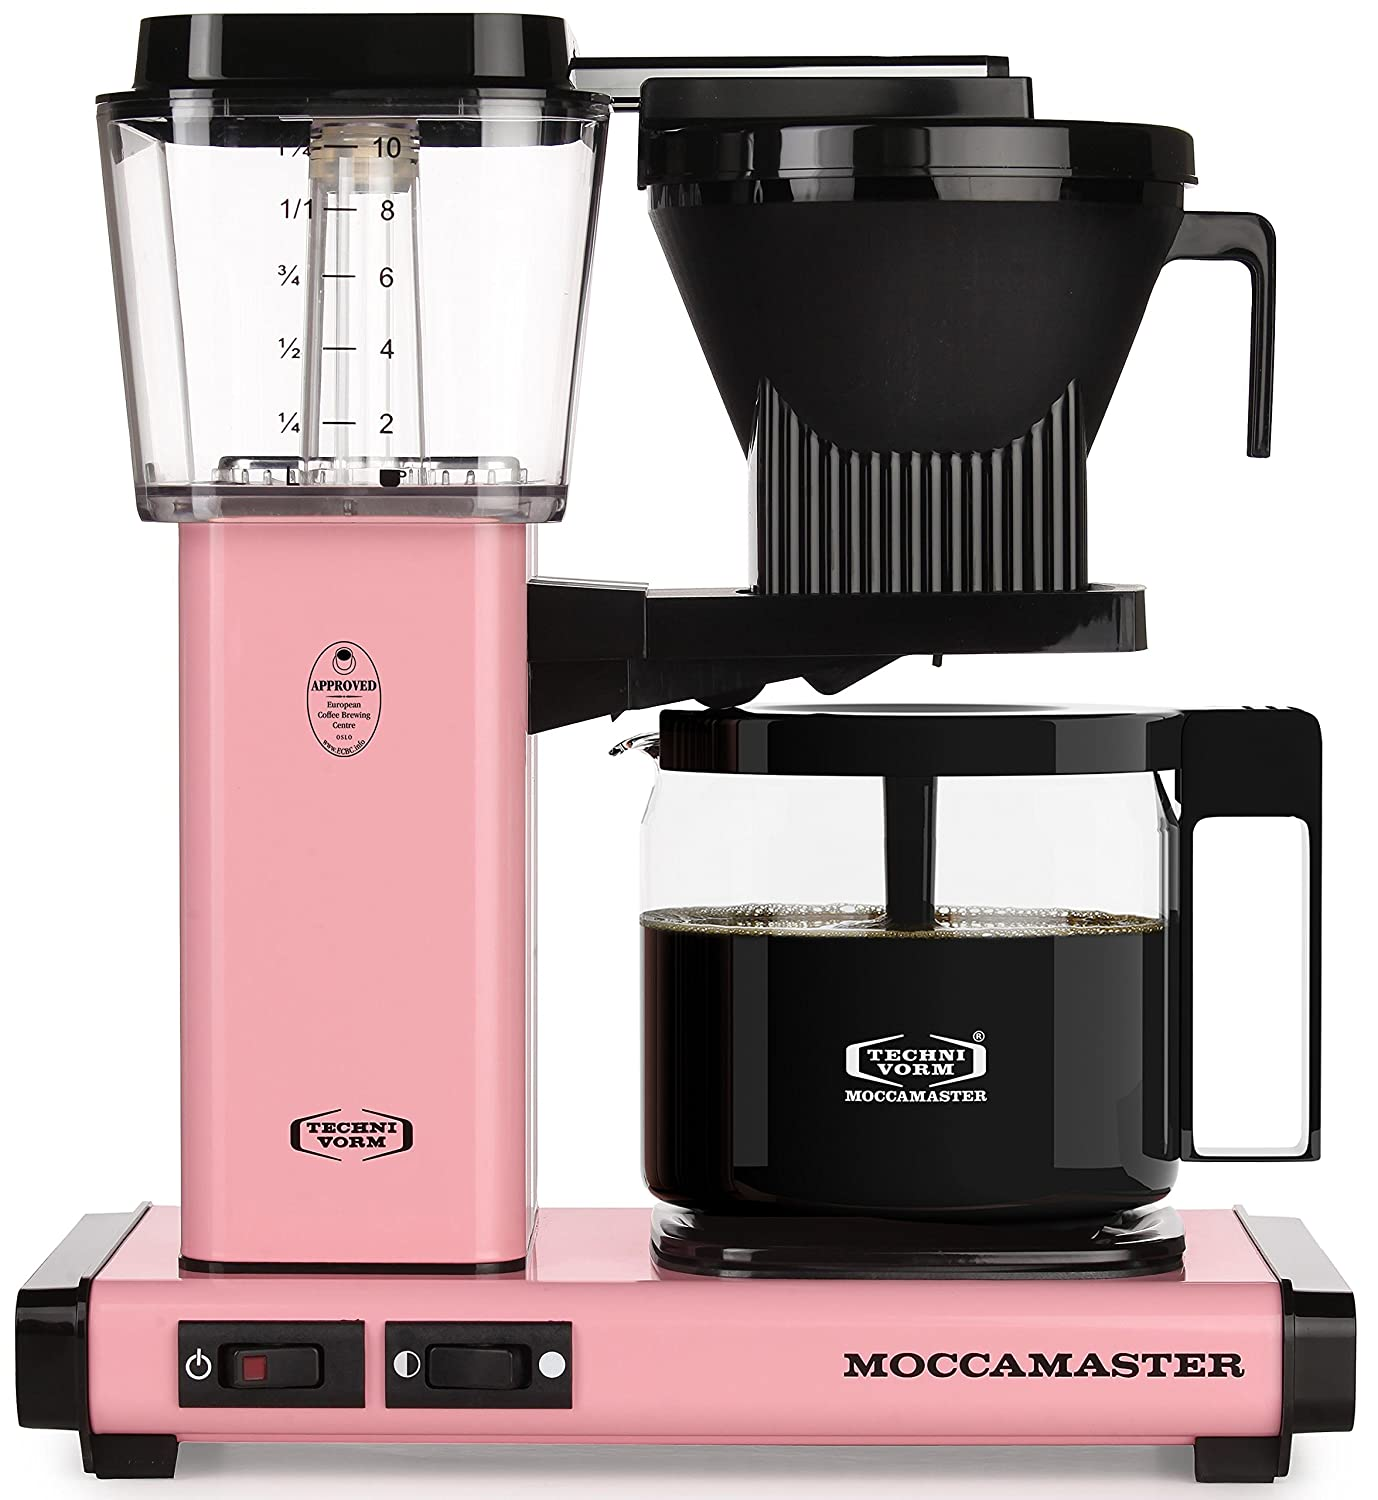 Technivorm Moccamaster 59607 KBG Coffee Brewer, 40 oz, Pink